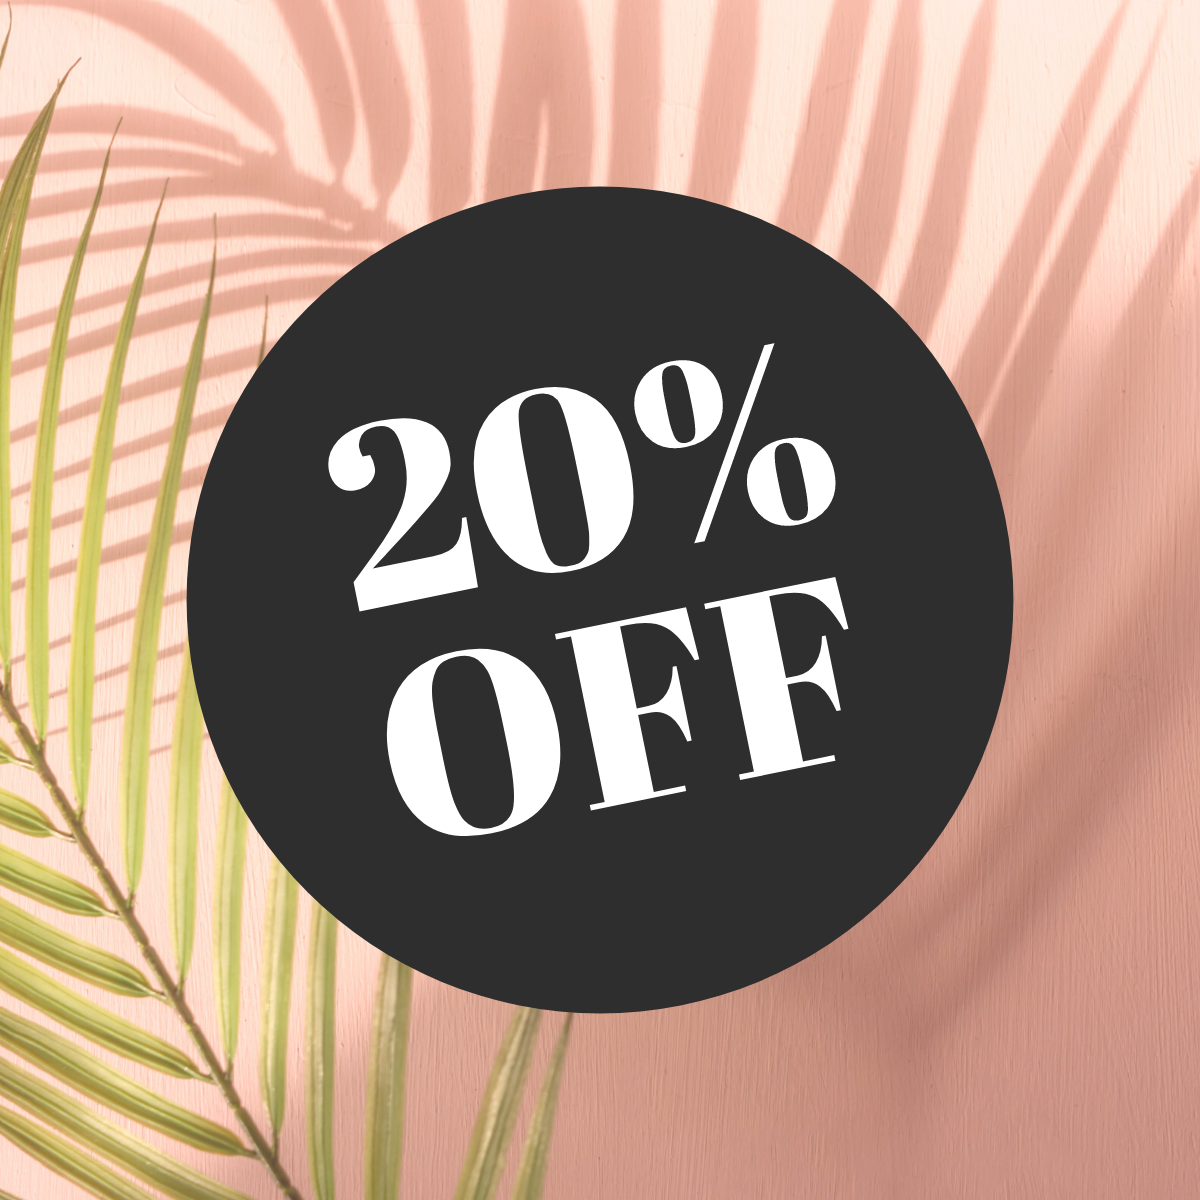 20% OFF Offers for June at Eyrebrushed.ie